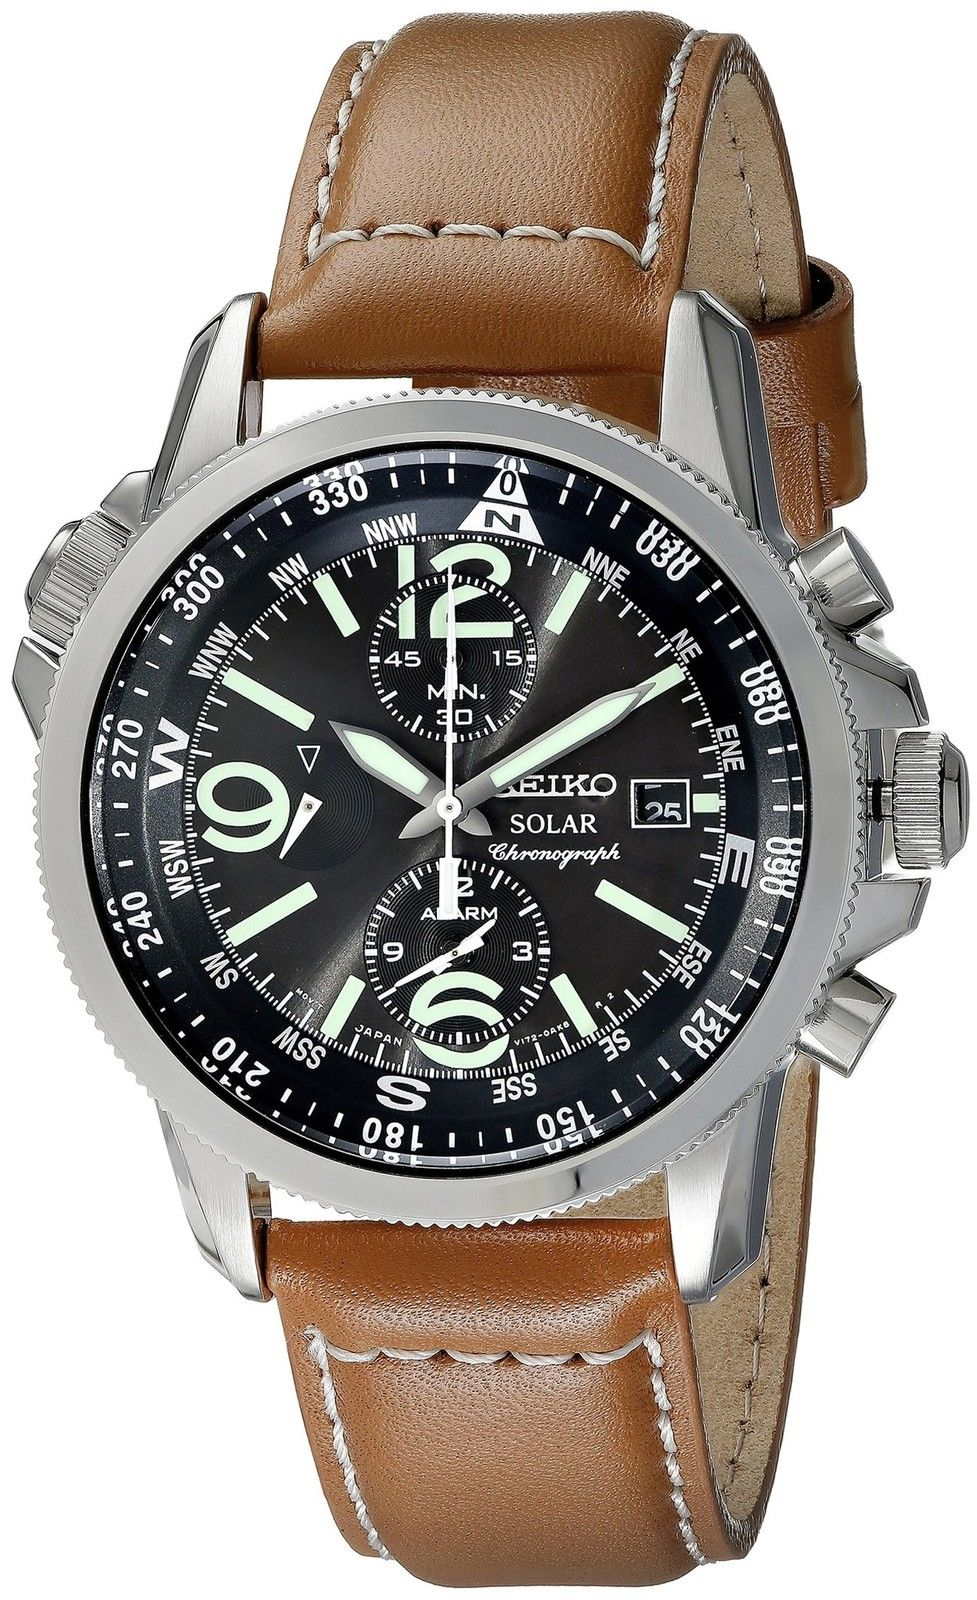 4d624e6ff Shop for Sportura Chronograph Black Dial Black Men's Watch by Seiko at  JOMASHOP for only $264.07! WARRANTY or GUARANTEE available with every item.